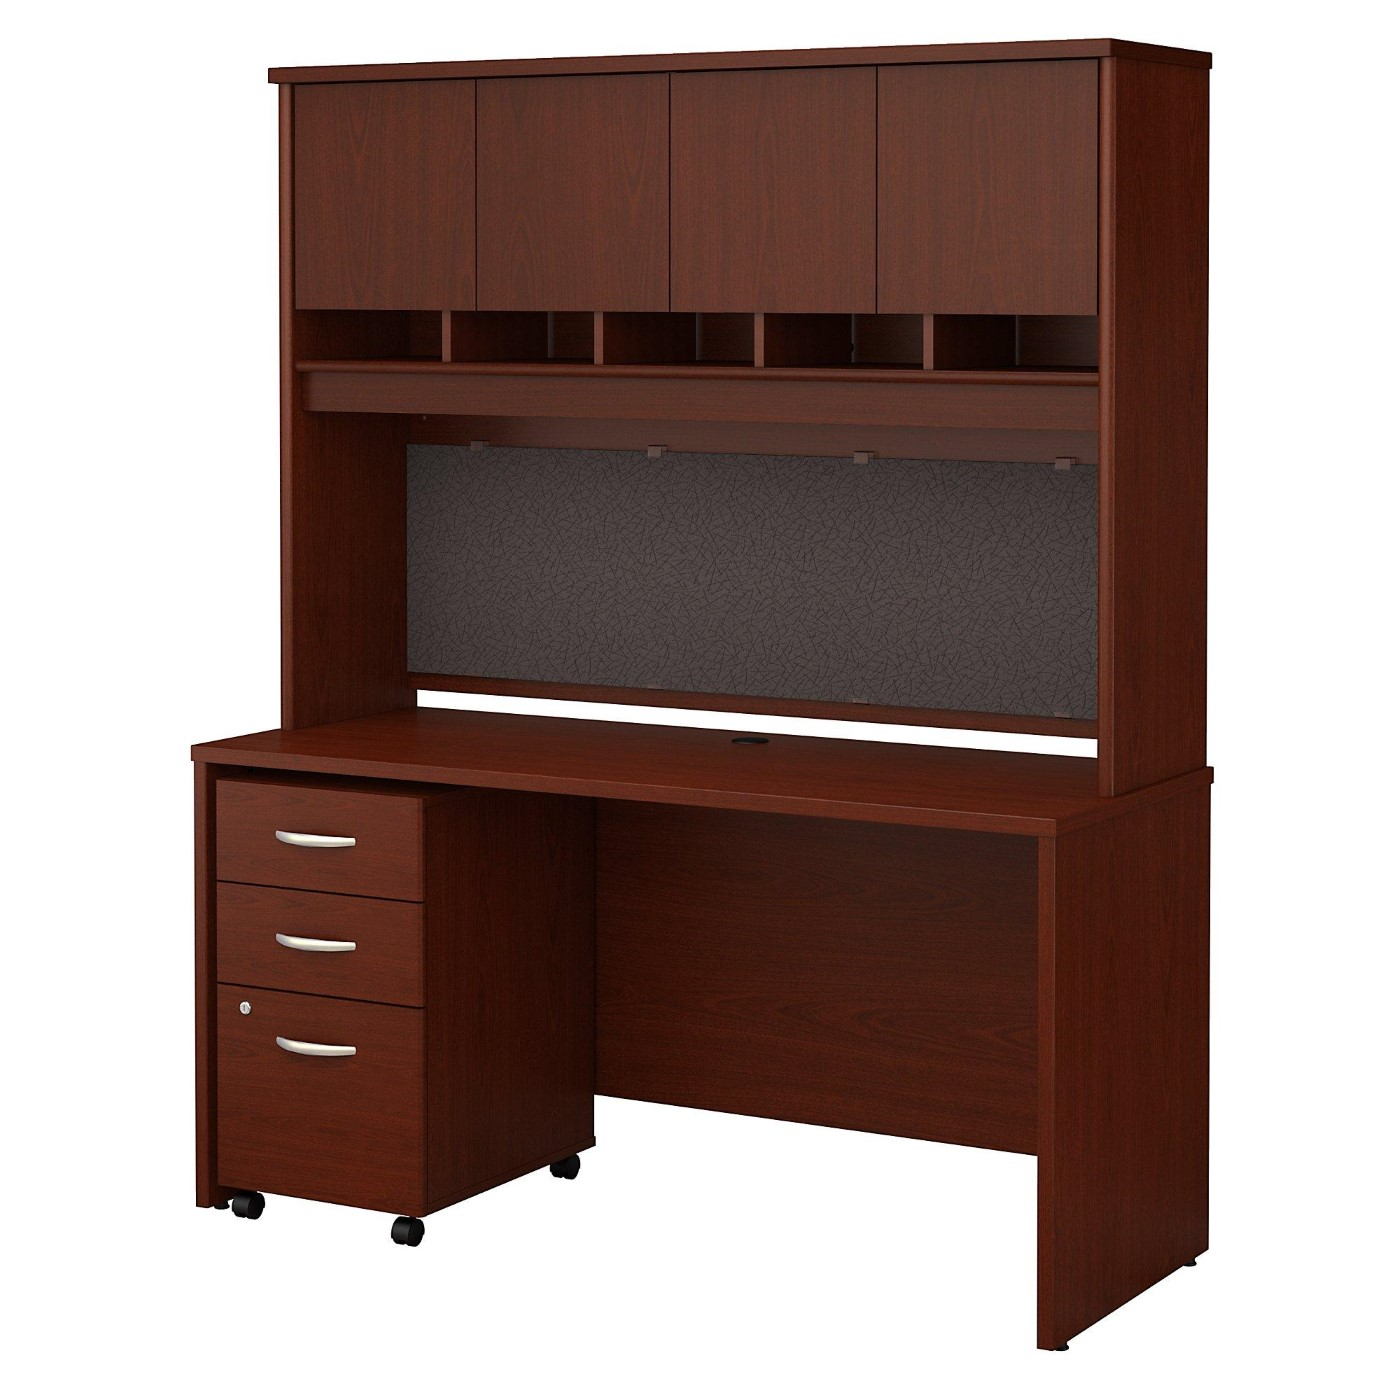 BUSH BUSINESS FURNITURE SERIES C 60W X 24D OFFICE DESK WITH HUTCH AND MOBILE FILE CABINET. FREE SHIPPING  VIDEO BELOW.